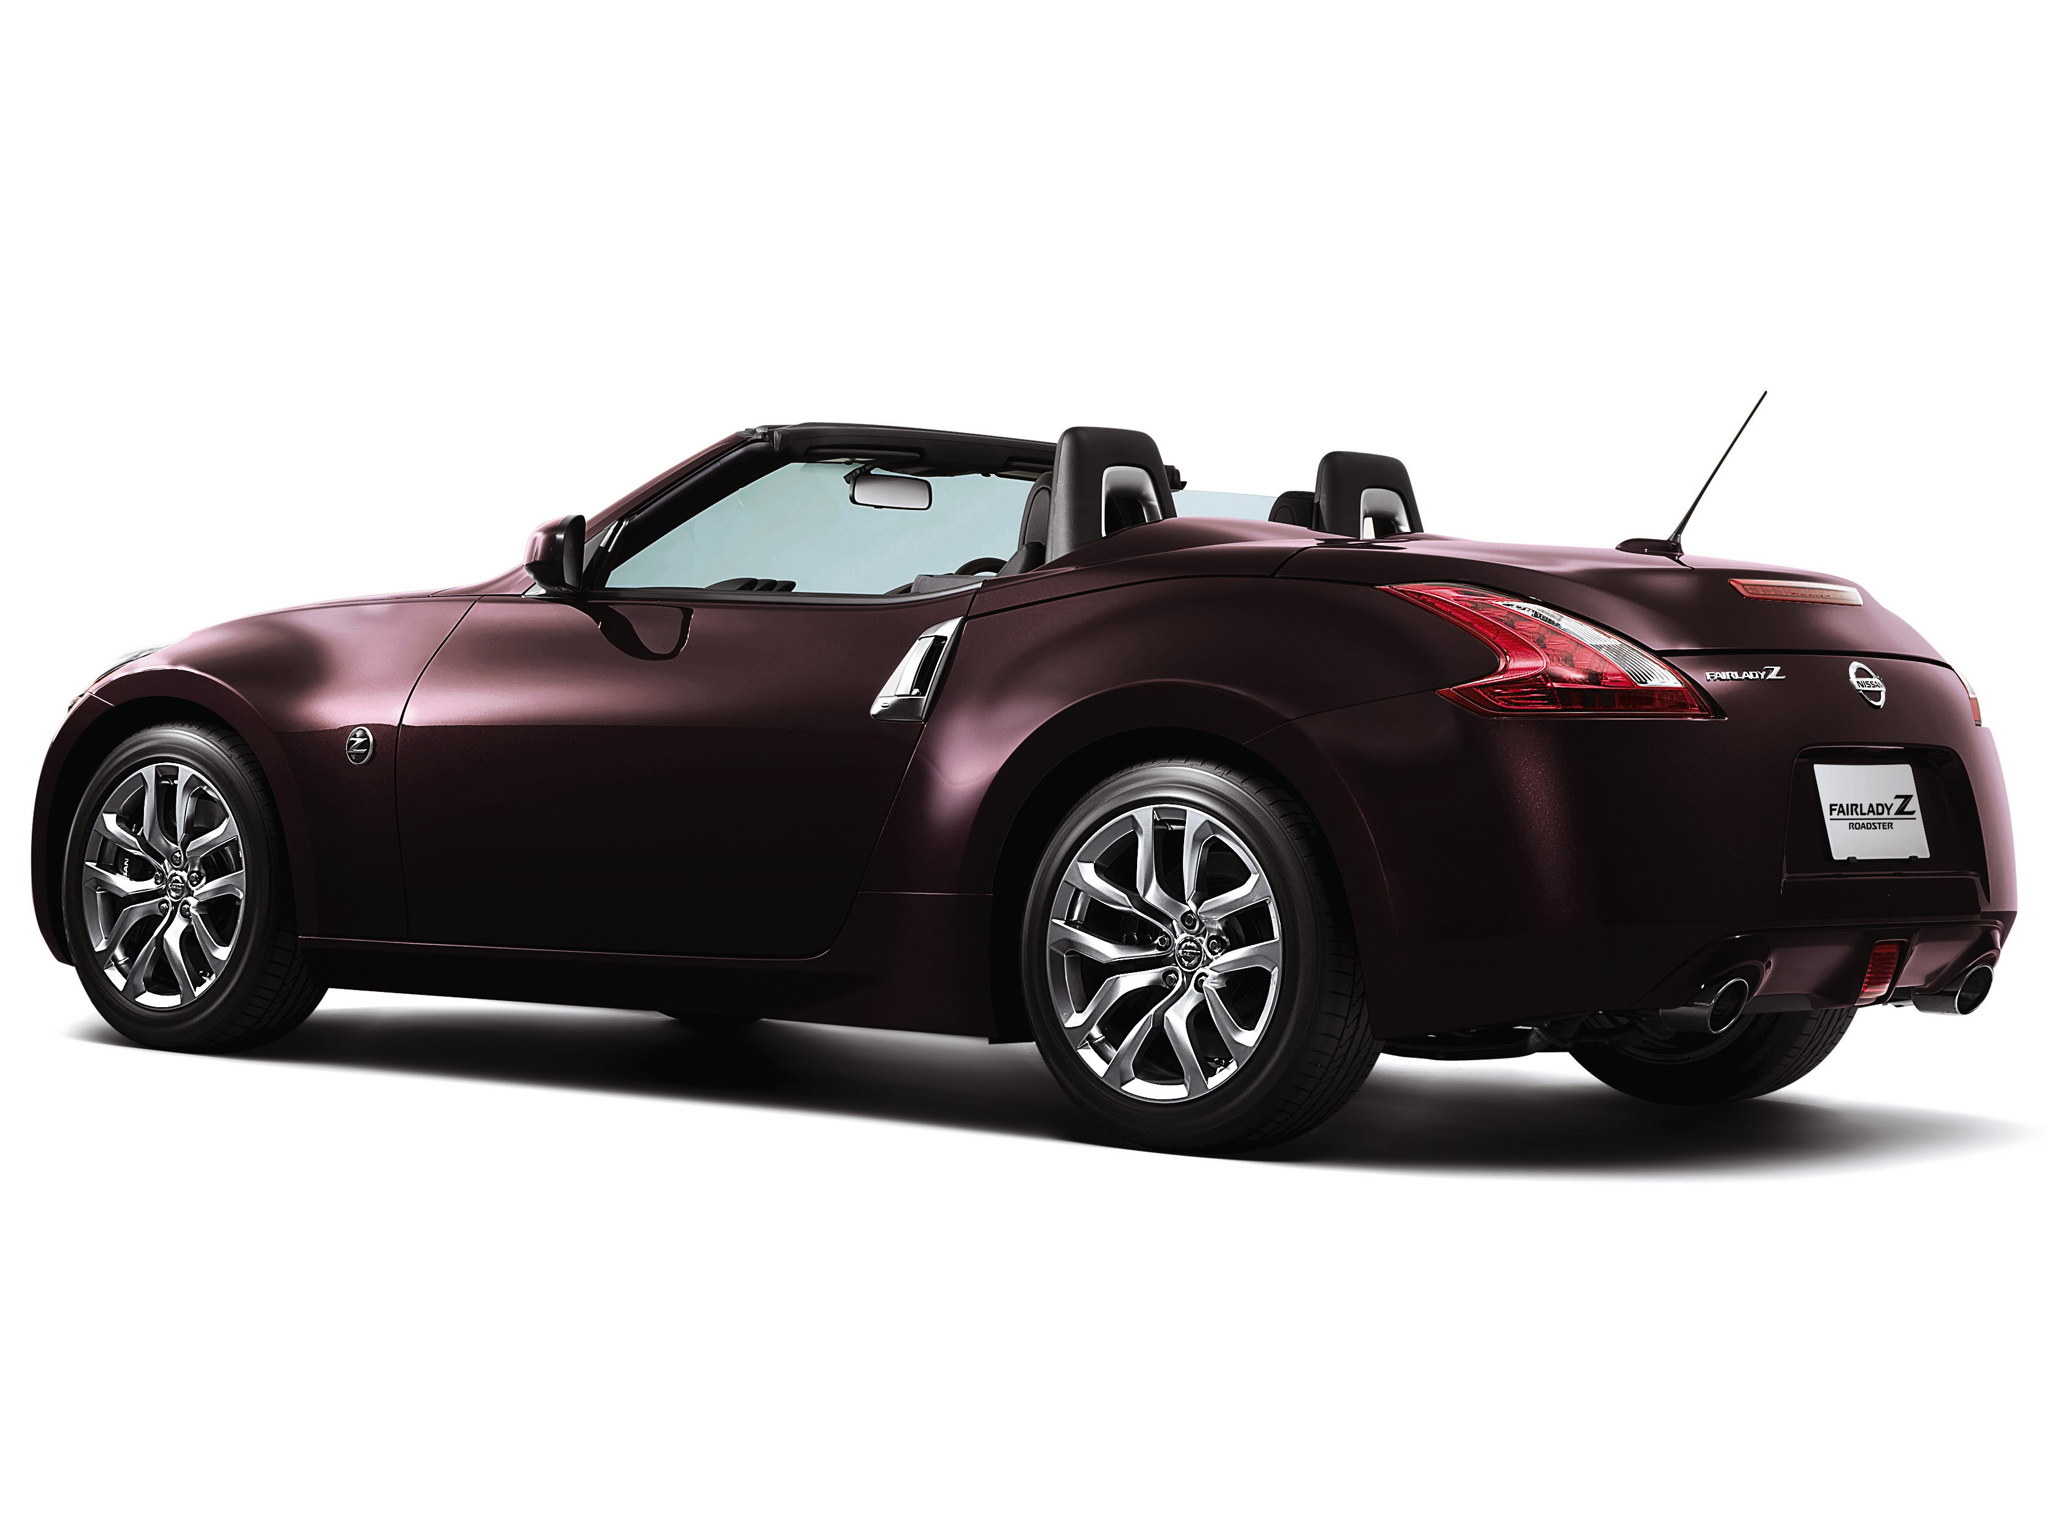 2019 Nissan Fairlady Z Roadster photo - 6